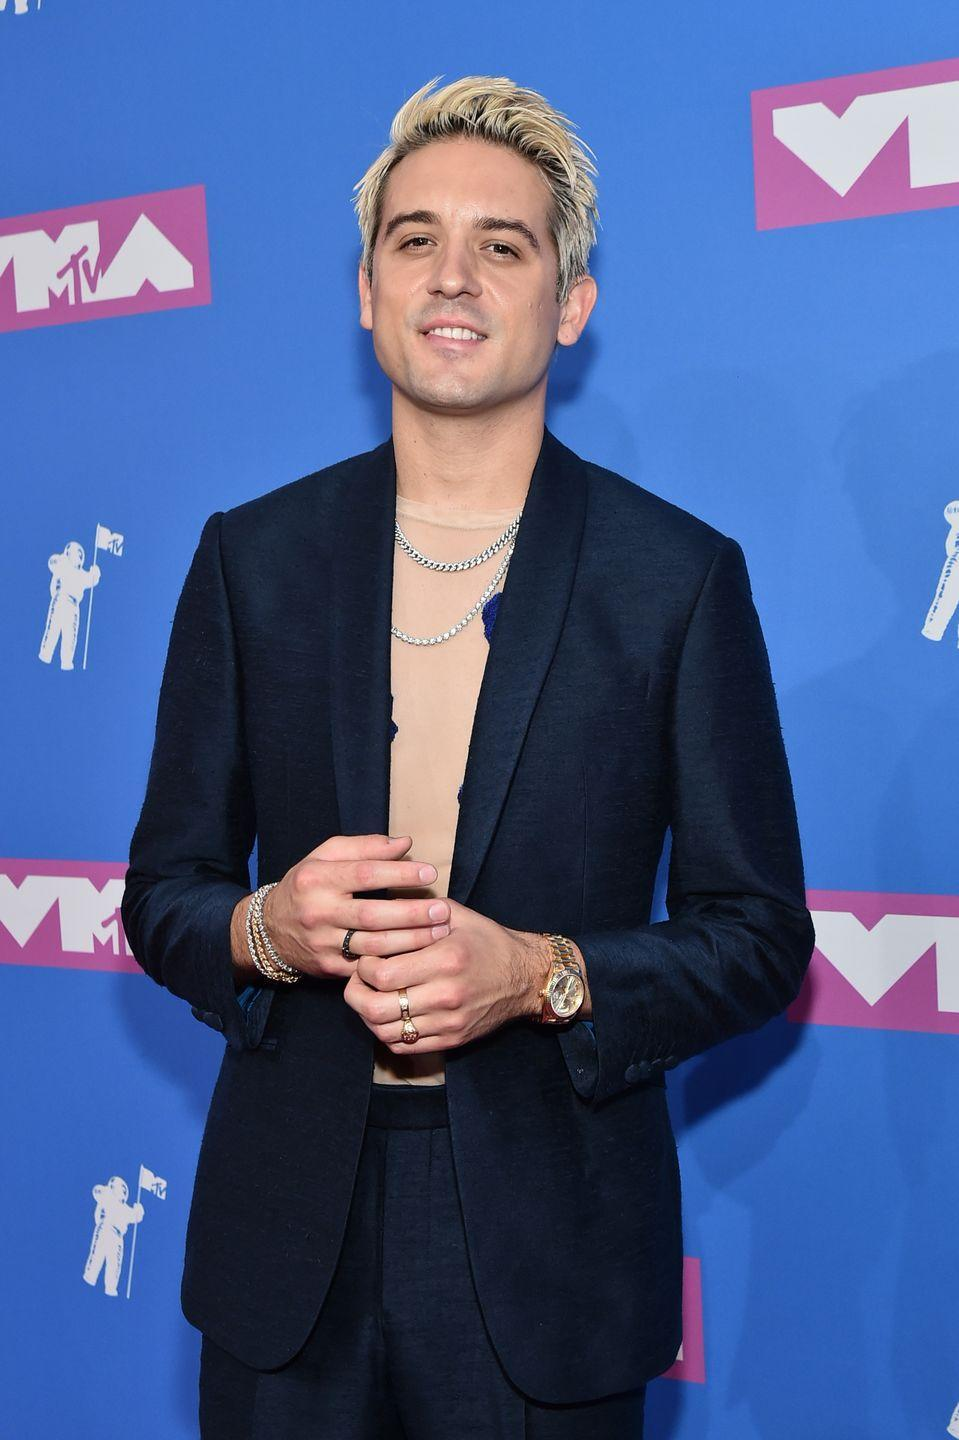 """<p><strong>Born:</strong> Gerald Earl Gillum</p><p>Speaking with <em><a href=""""https://www.interviewmagazine.com/music/discovery-g-eazy"""" rel=""""nofollow noopener"""" target=""""_blank"""" data-ylk=""""slk:Interview"""" class=""""link rapid-noclick-resp"""">Interview</a></em> in 2012, G-Eazy explains how he coined his stage name. """"It came about 10 years ago now. Times were different then,"""" he said. """"The name probably sounded cool to me when I was 13, [like G-Unit]. The climate has definitely changed since: the fashion trends, the style of music I listen to.""""<br></p>"""